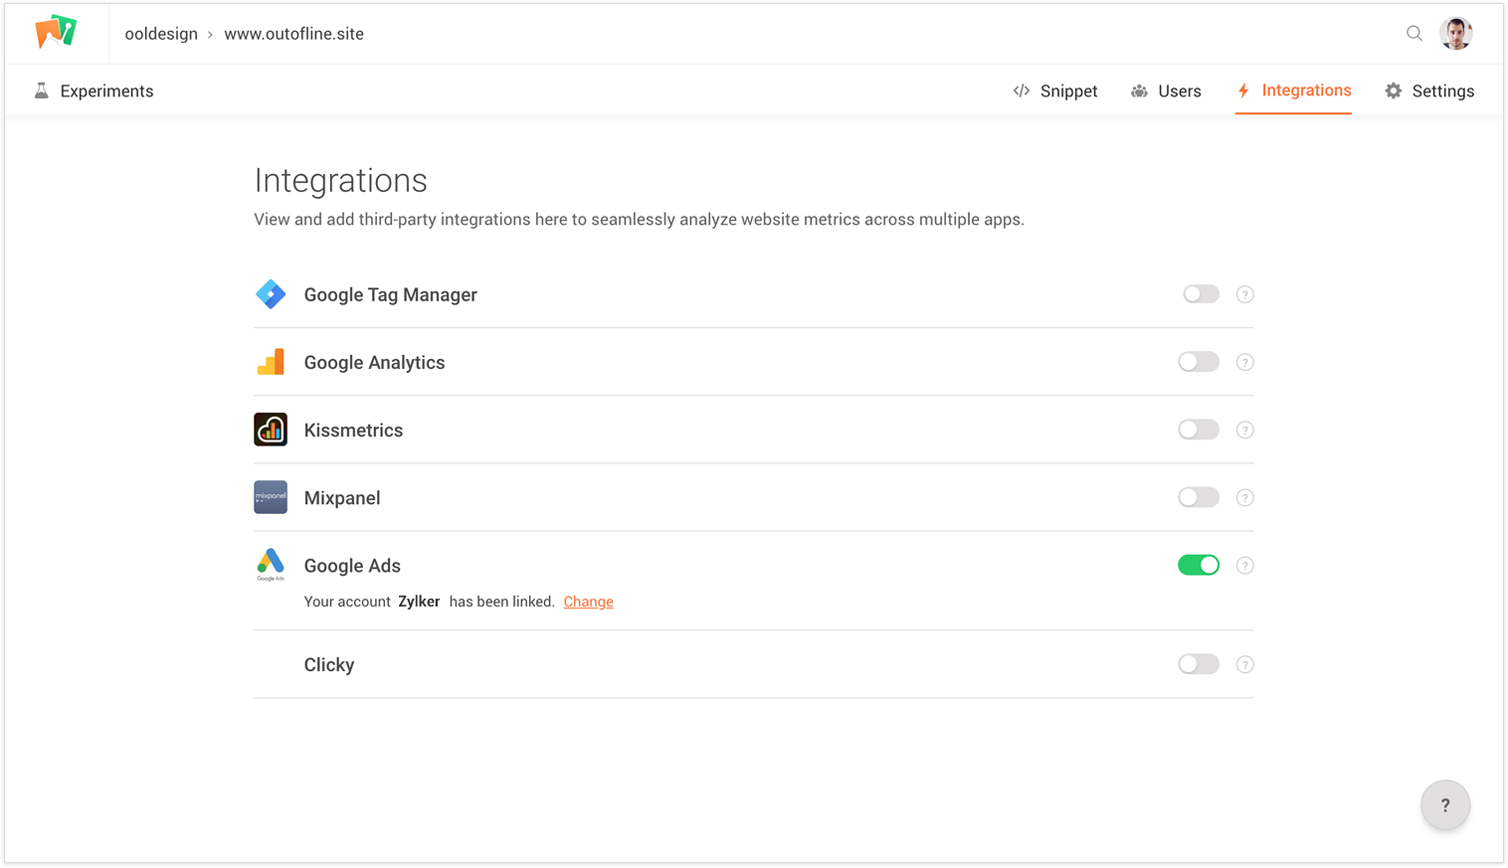 Enabling PageSense and Google Ads Integration